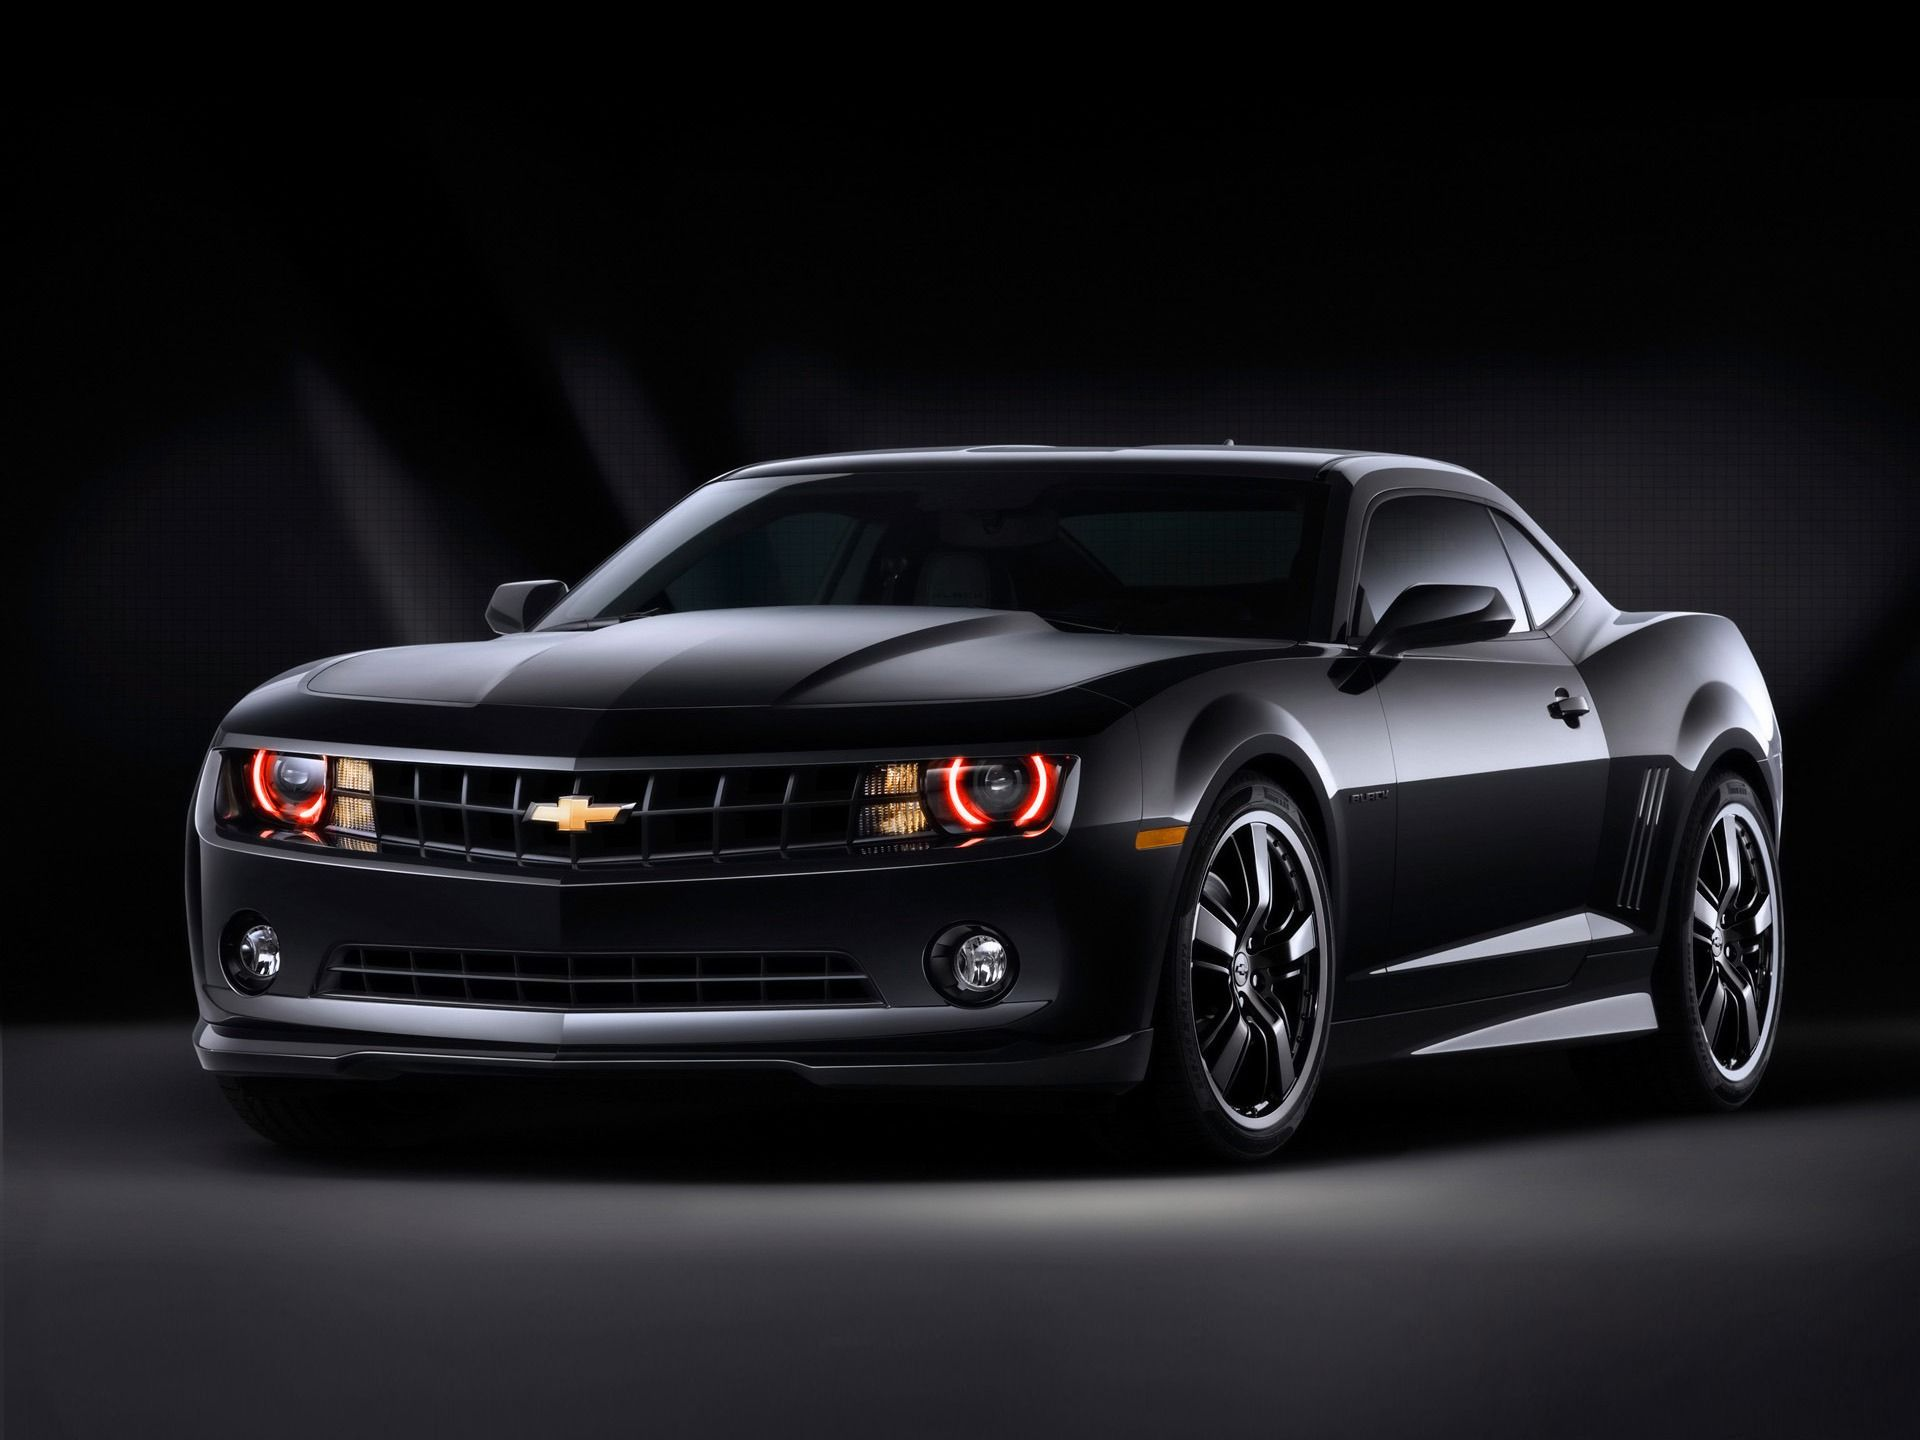 Muscle Car Wallpaper Muscle Cars Cars Wallpapers in jpg format for